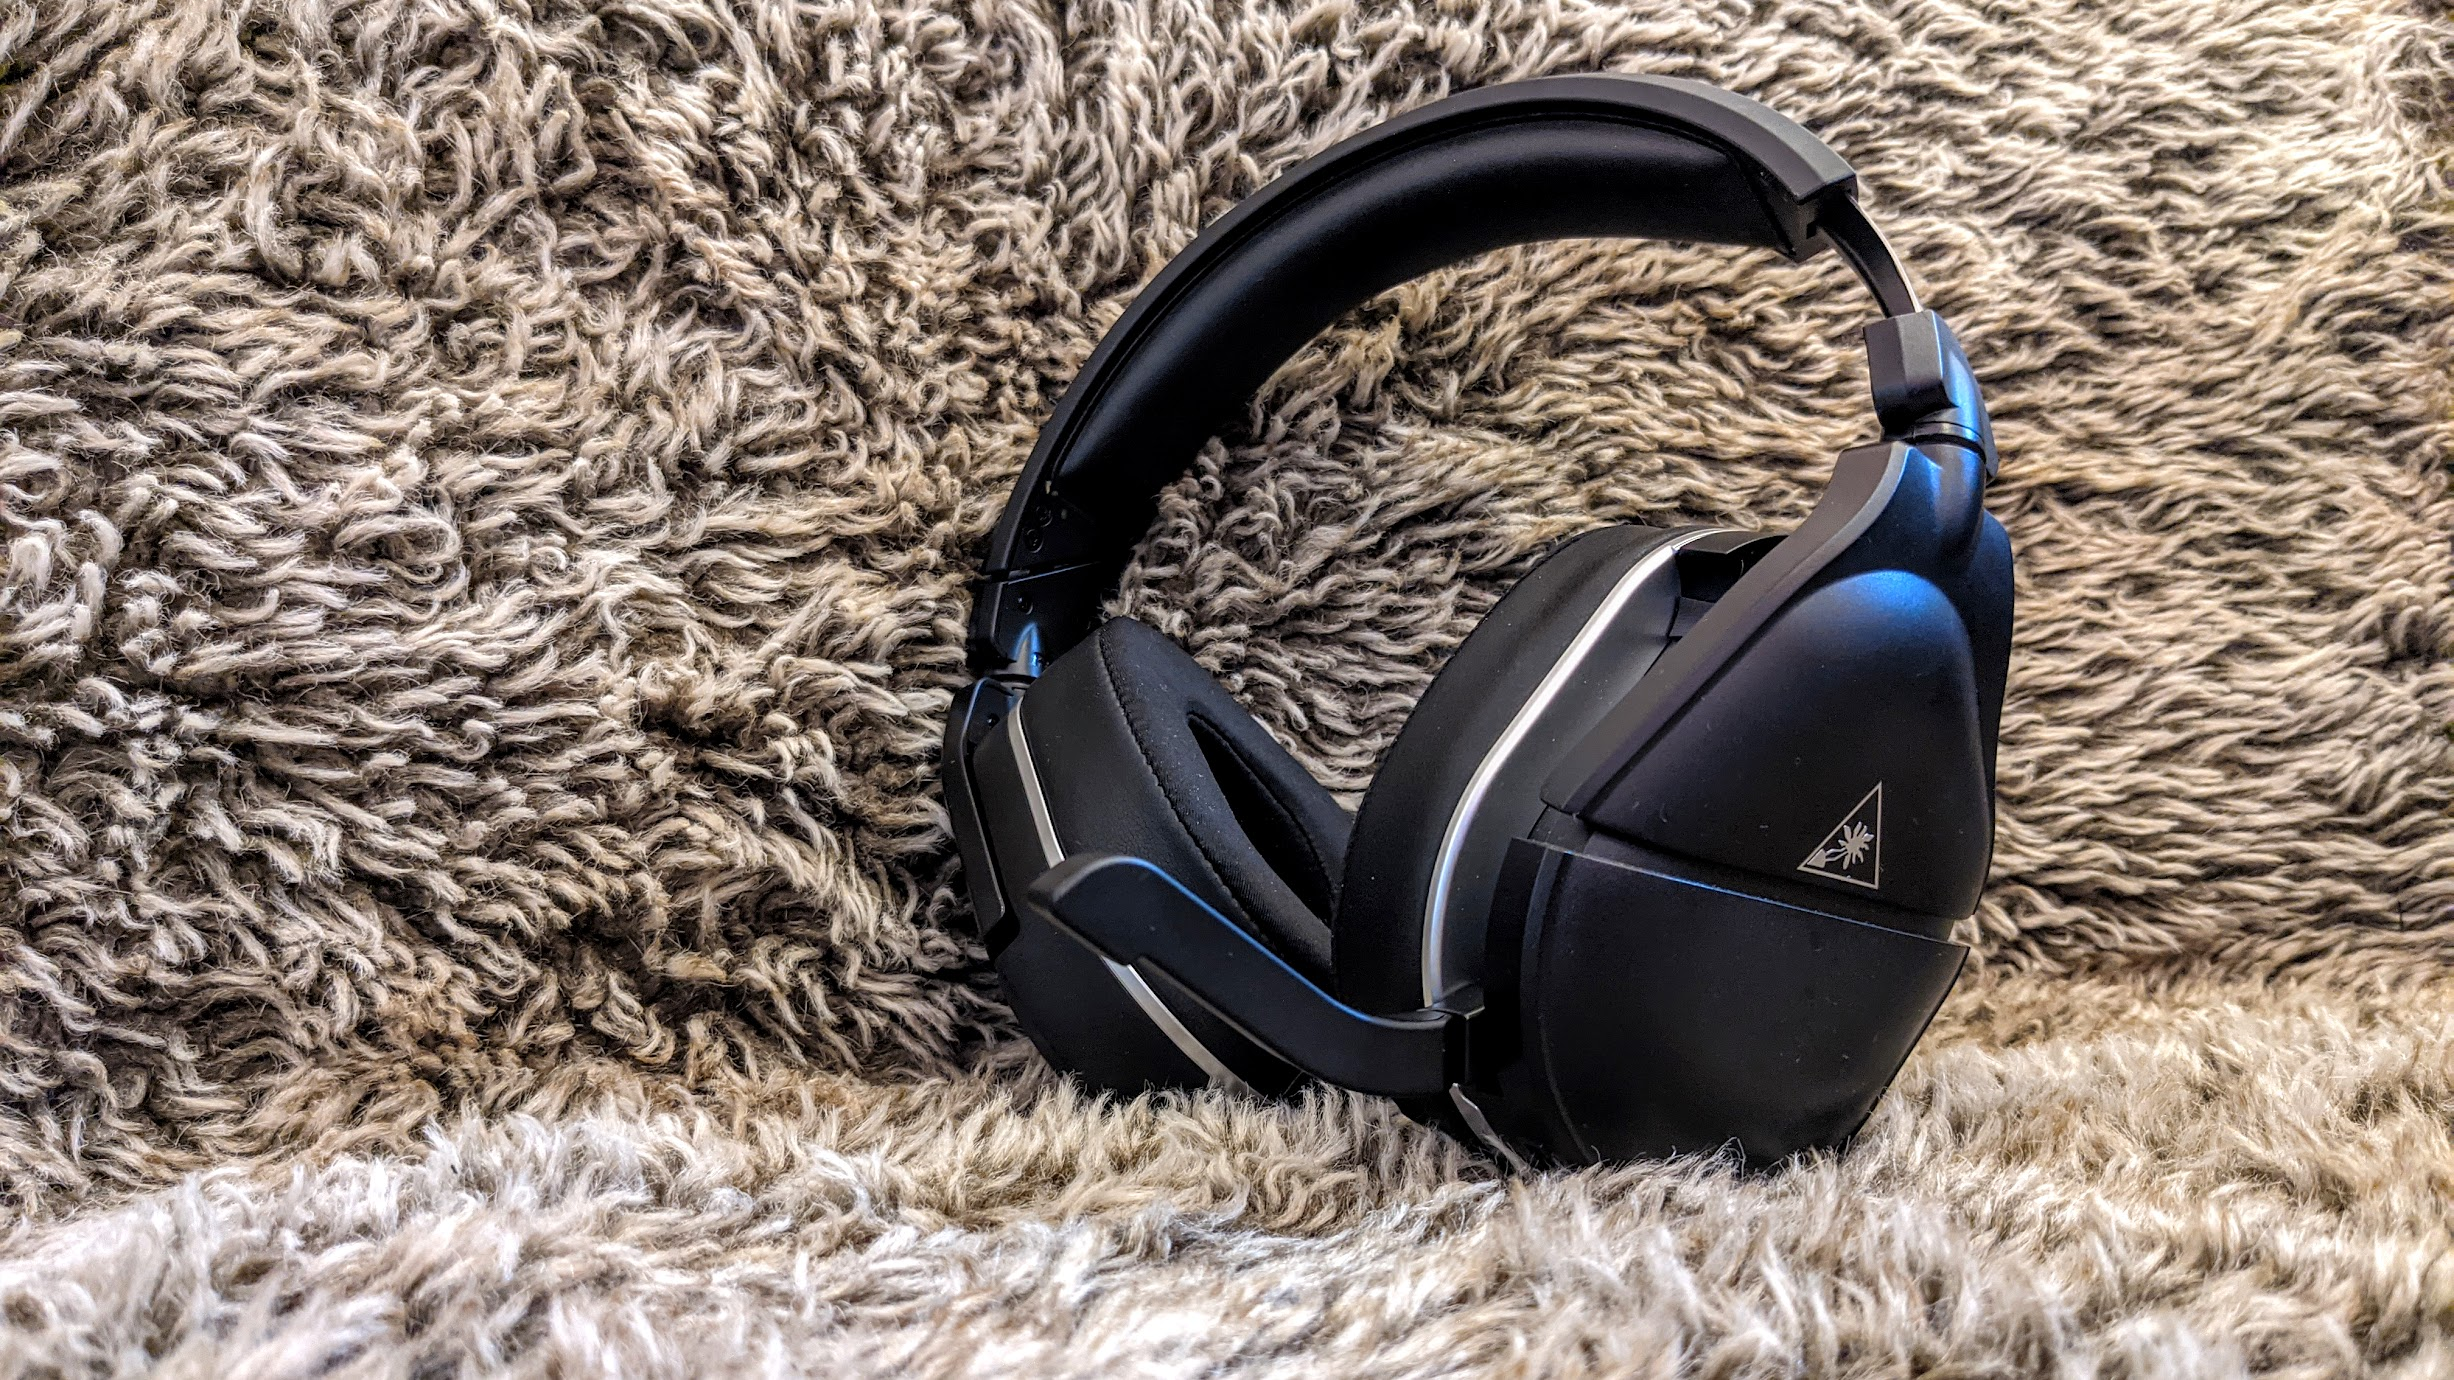 The Turtle Beach Stealth 700 Gen 2 is great value for money